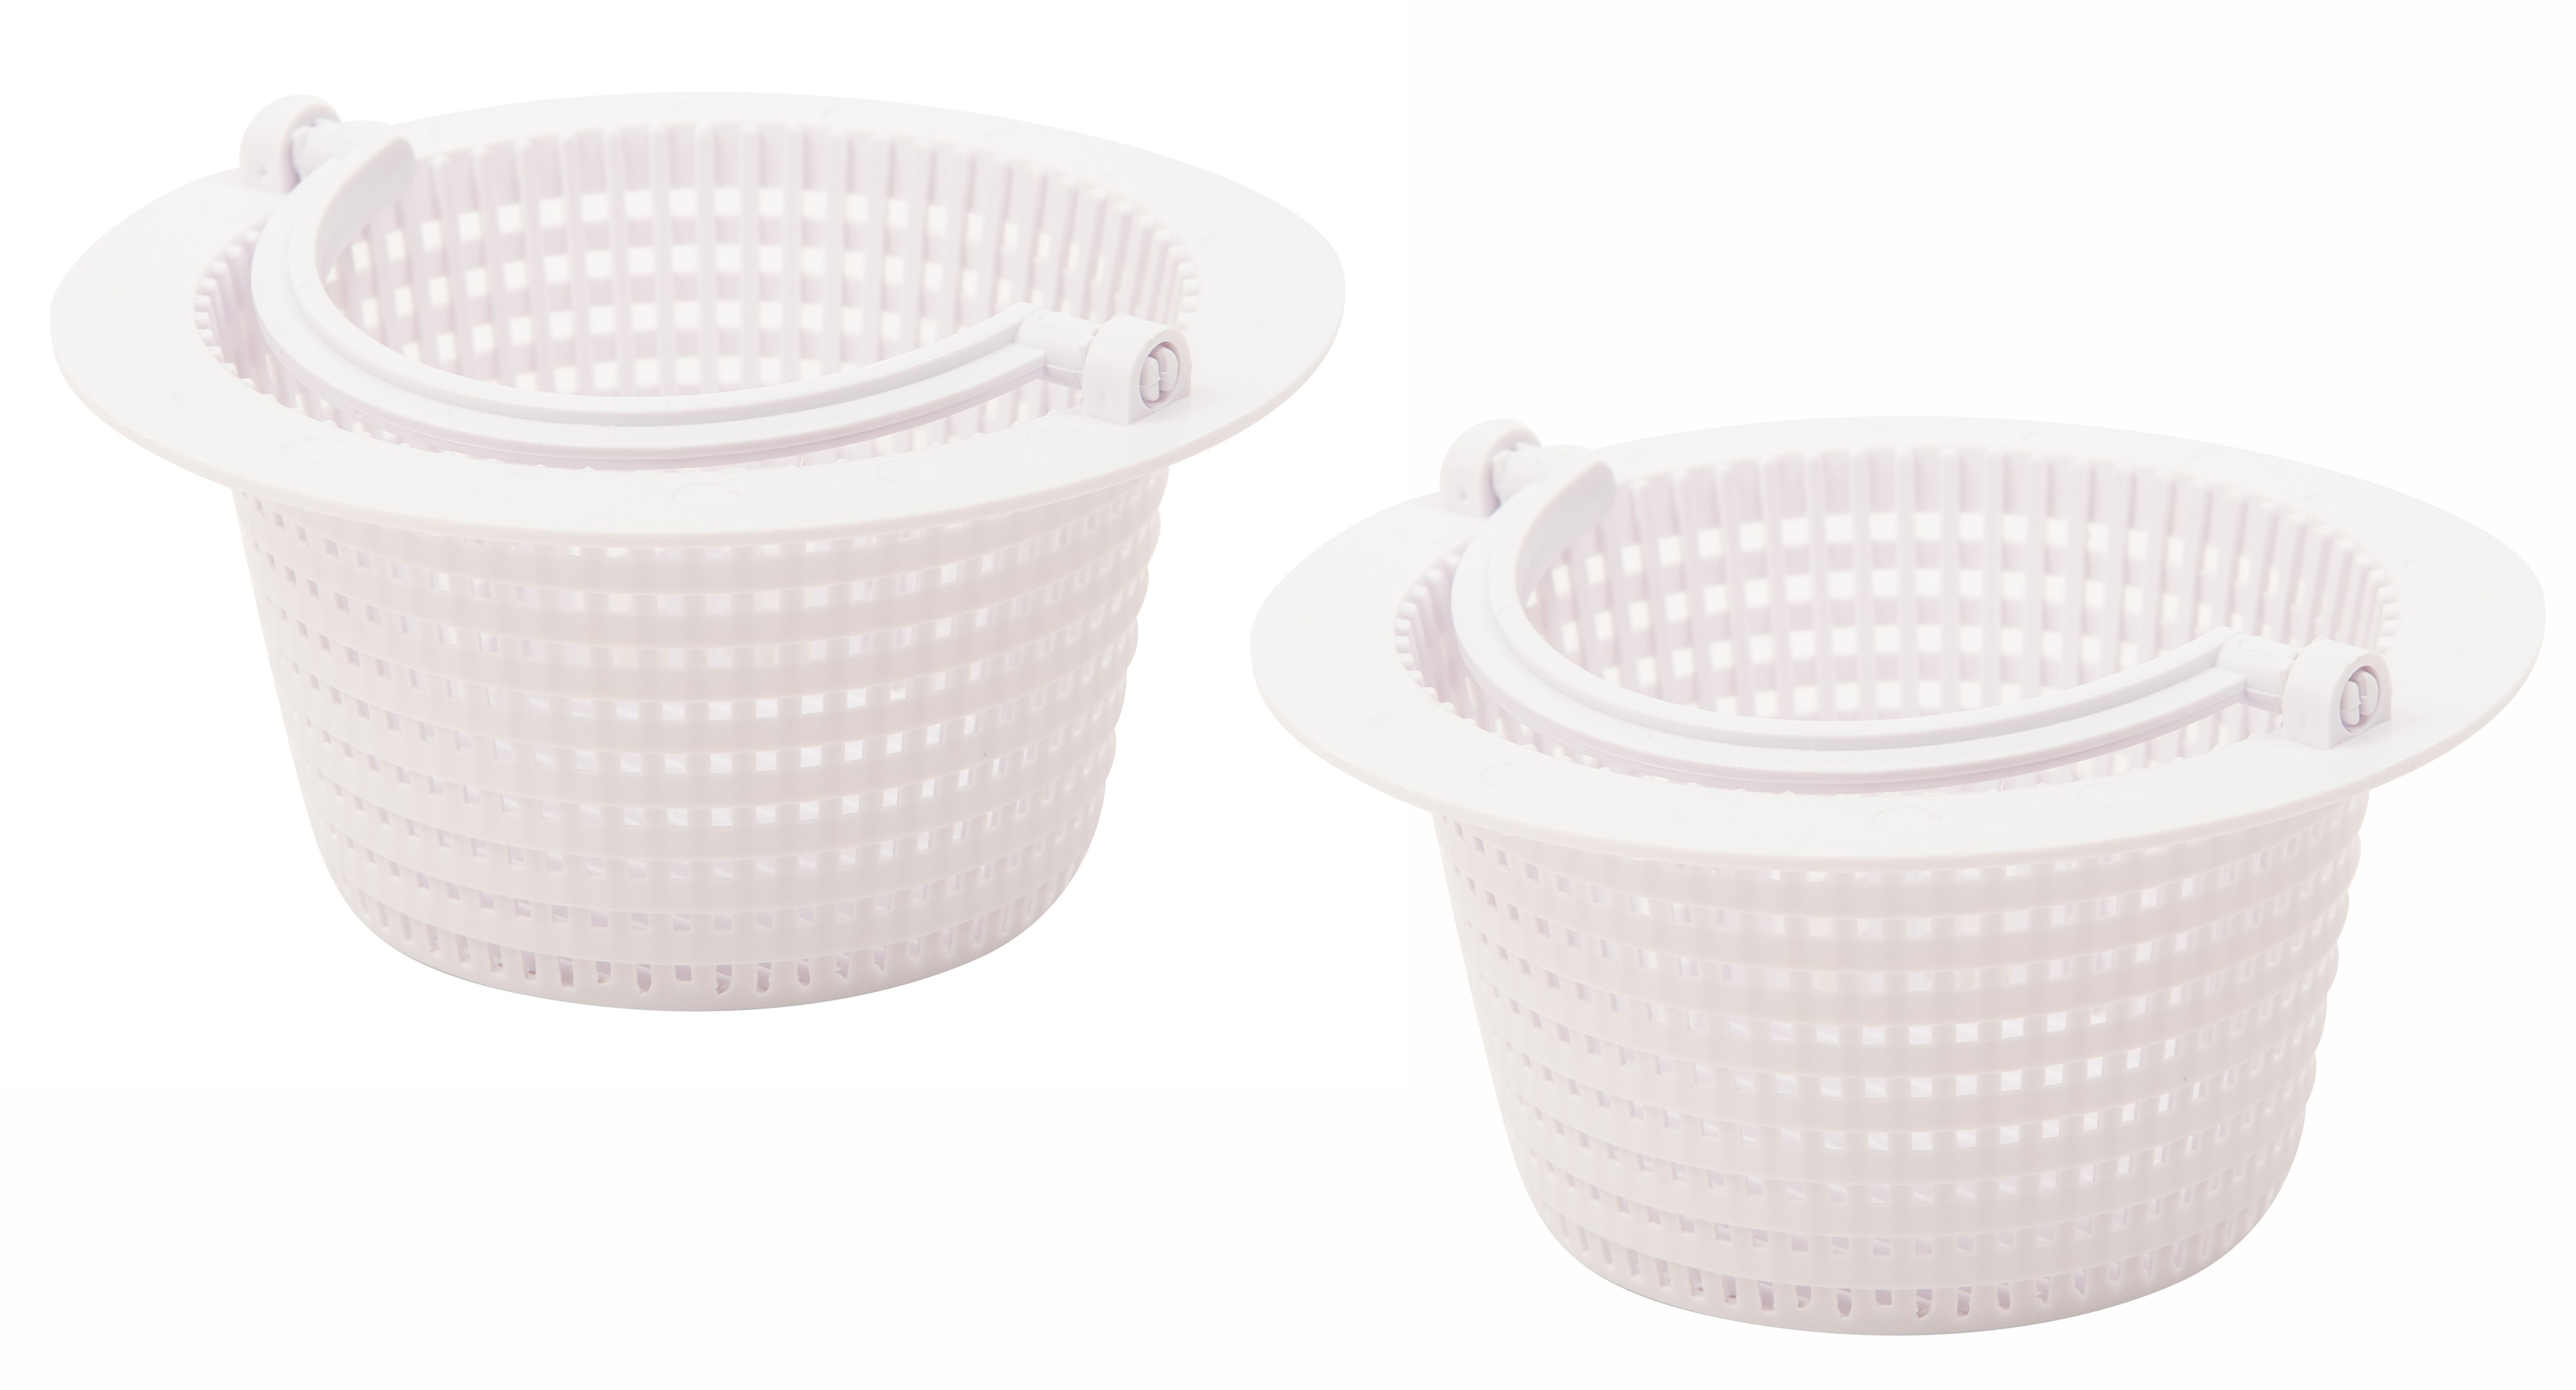 Swimming Pool Skimmer Basket - Replacement 2 Pack